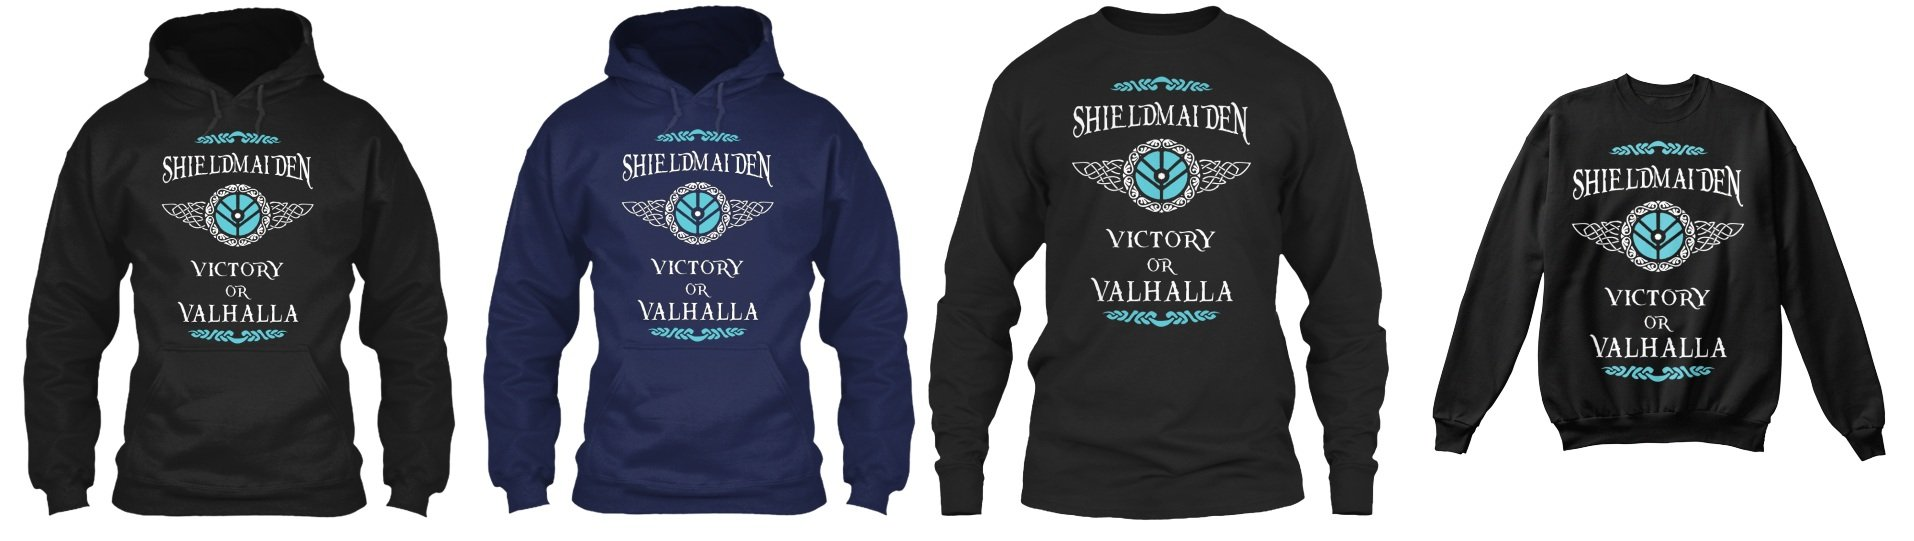 Shieldmaiden Lagertha T-Shirts, Hoodies and Tank Tops (Vikings)